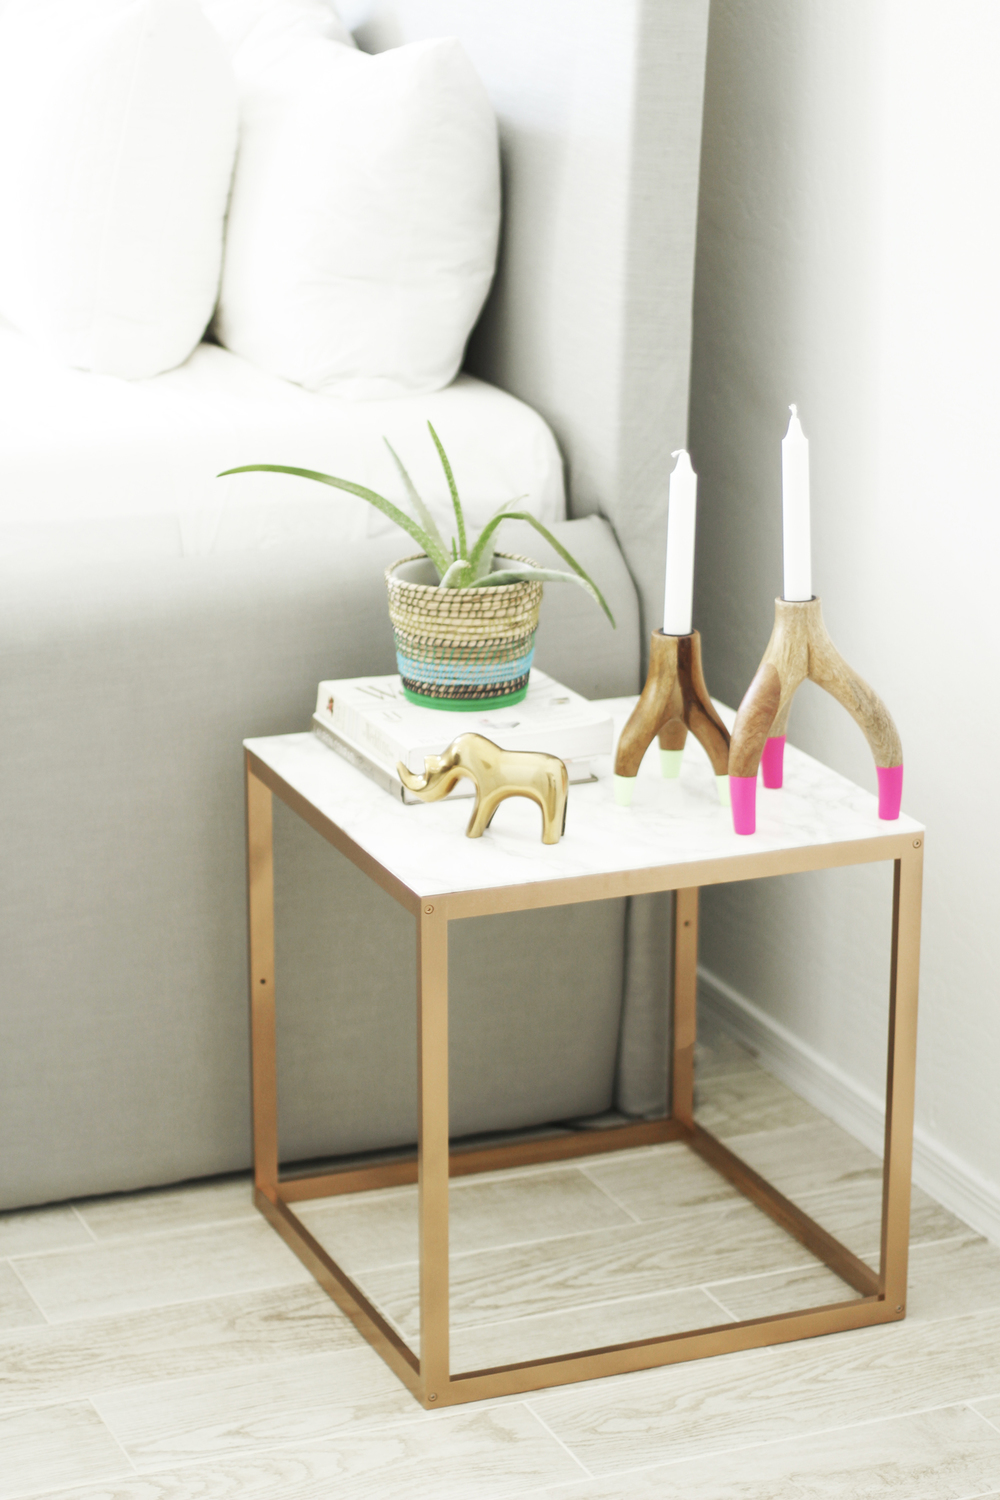 Apartment furniture contact paper: diy marble hearth and a ...